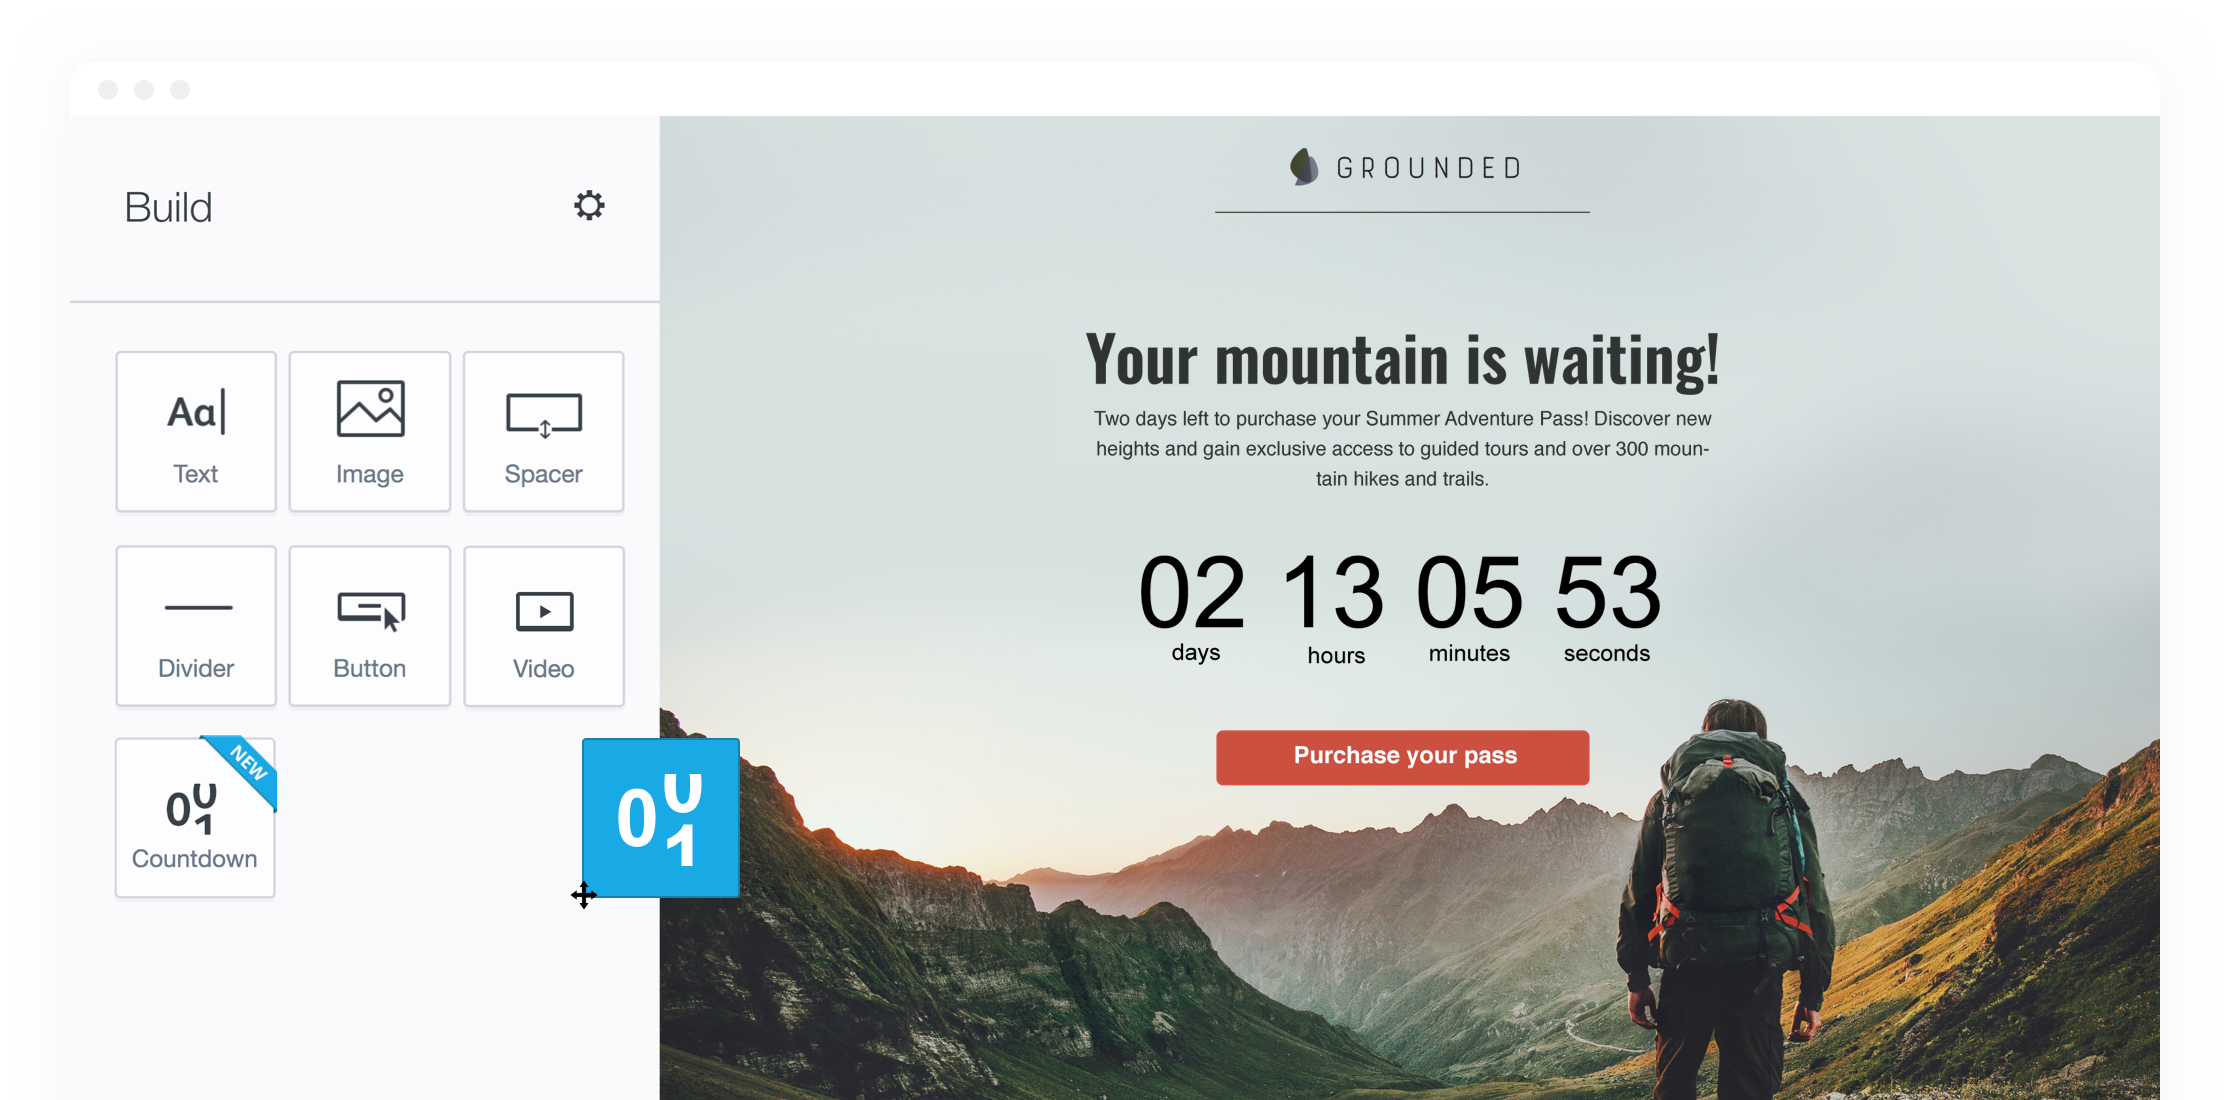 Campaign Monitor Features - Countdown Timer and Templates